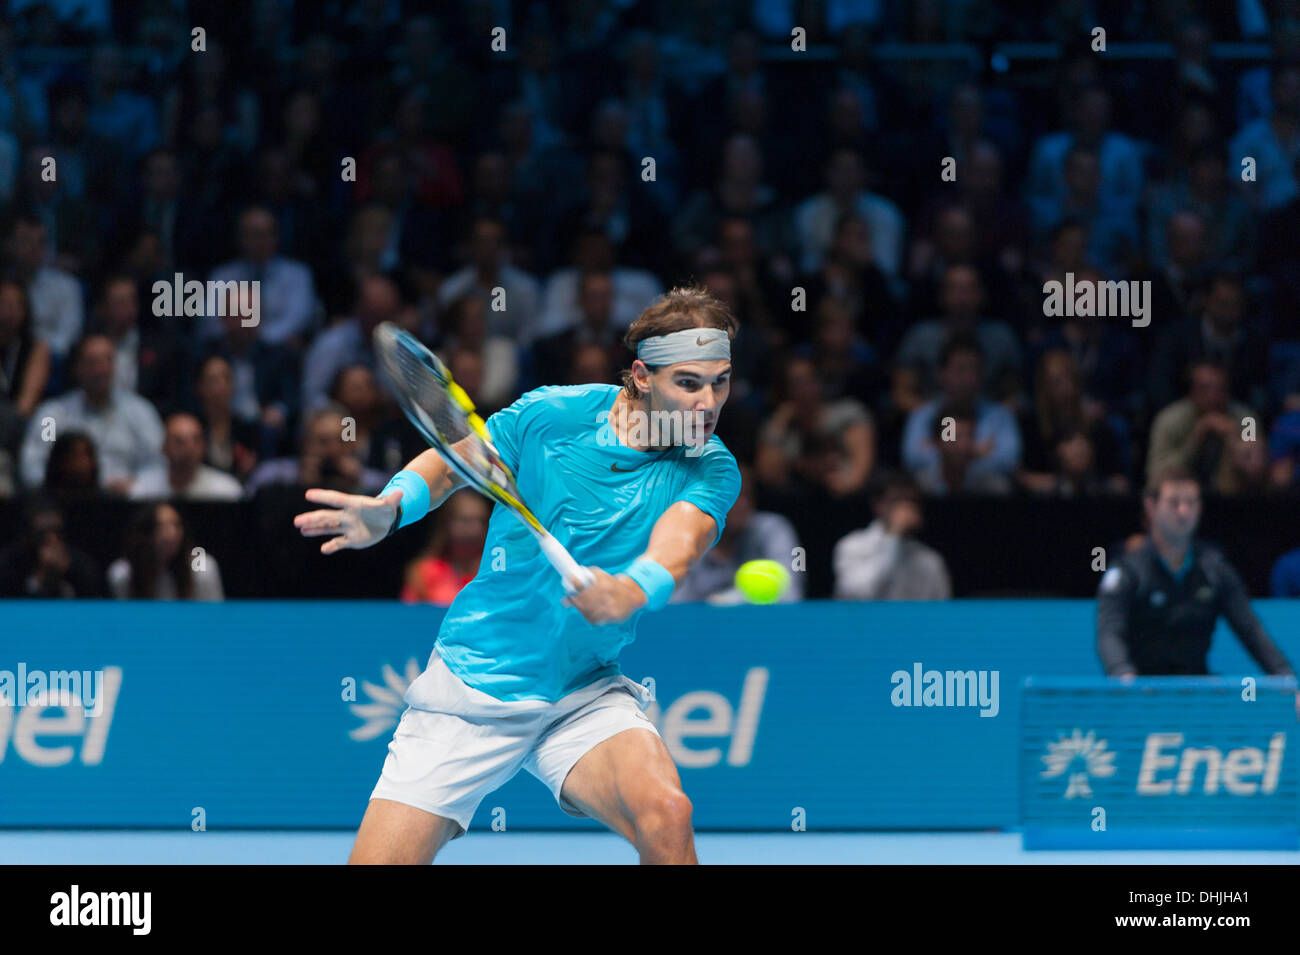 The O2, London, UK. 11 Nov, 2013. Rafael Nadal in action at the ATP World Tour Finals. Nadal lost the match 6-3 6-4 to Novak Djokovic © Malcolm Park editorial/Alamy Live News - Stock Image